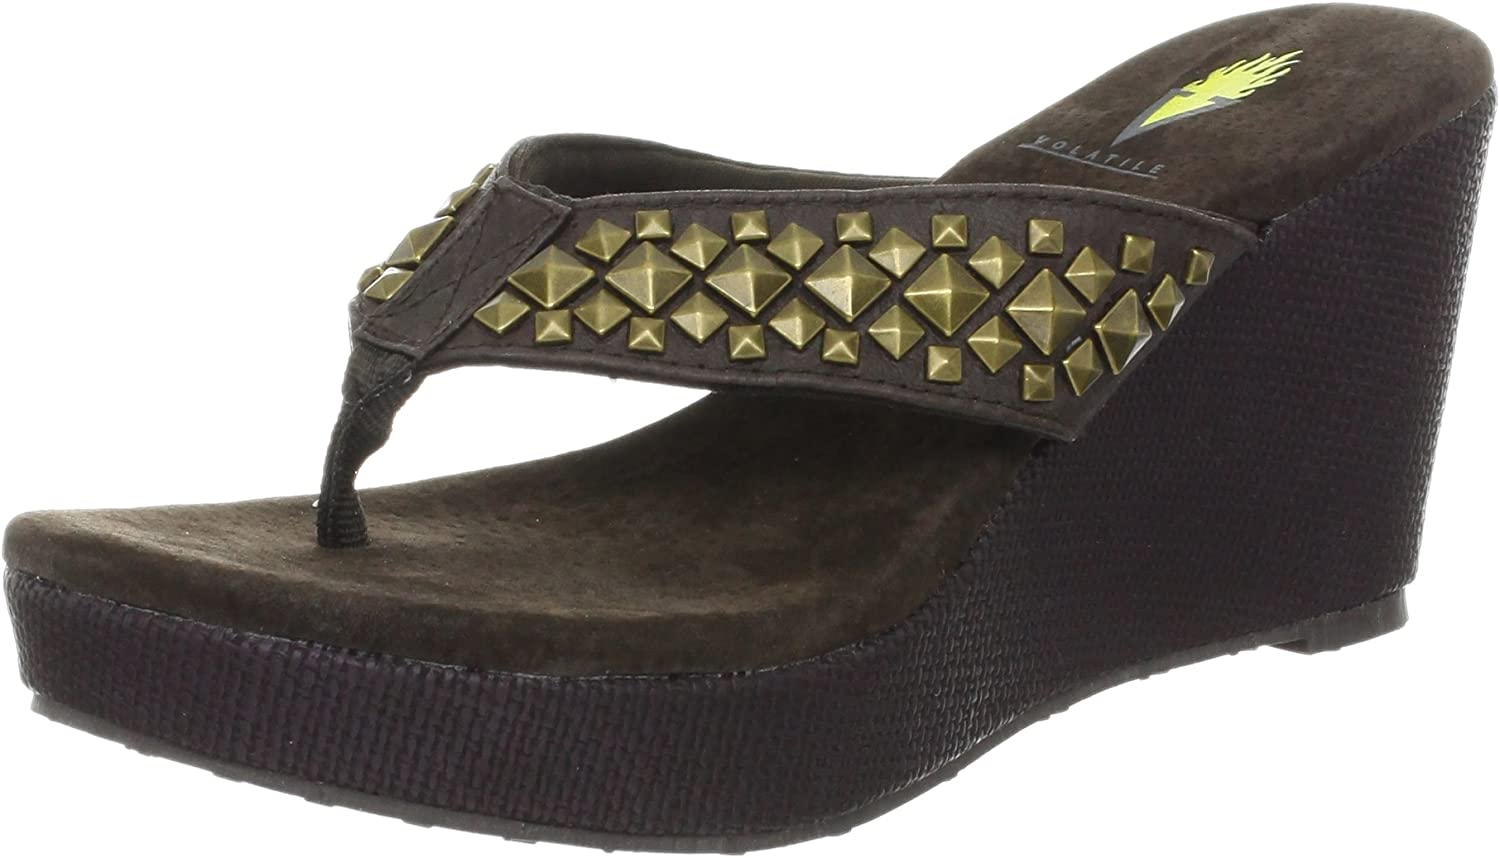 Volatile Women's Giza Wedge Sandal